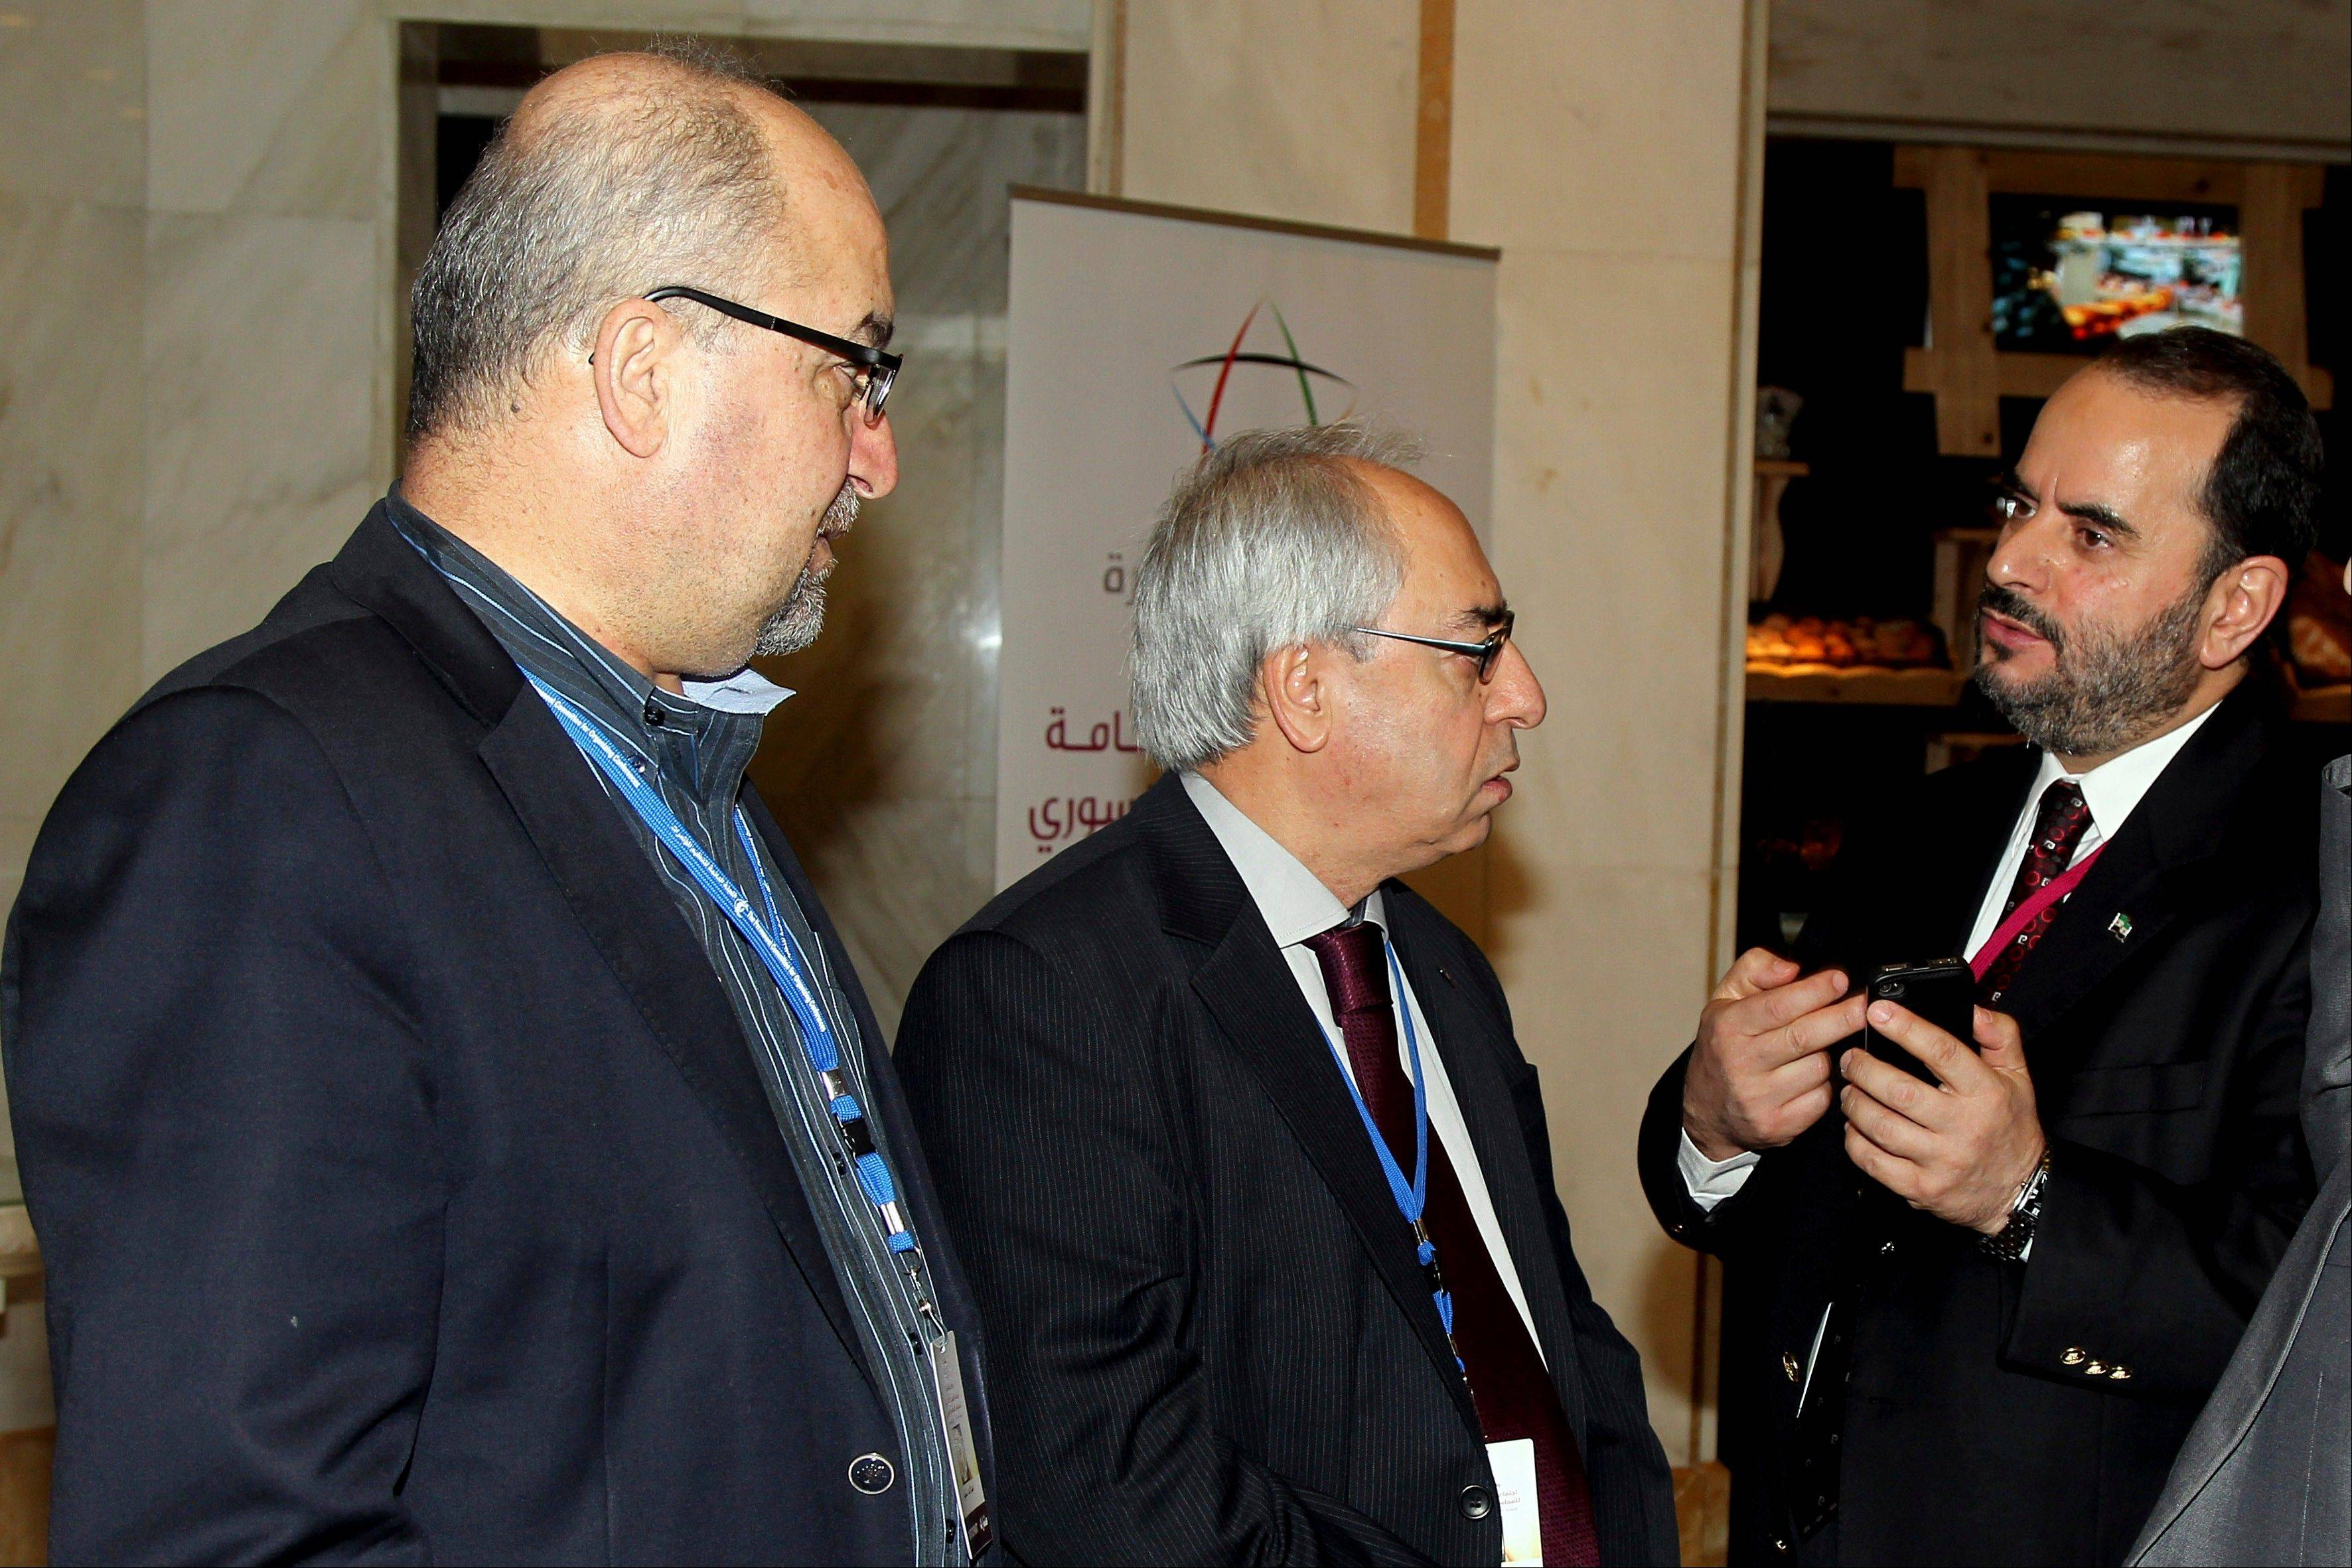 Syrian regime opponent Abdel Baset Seda, center, speaks with other participants during the meeting of the General Assem